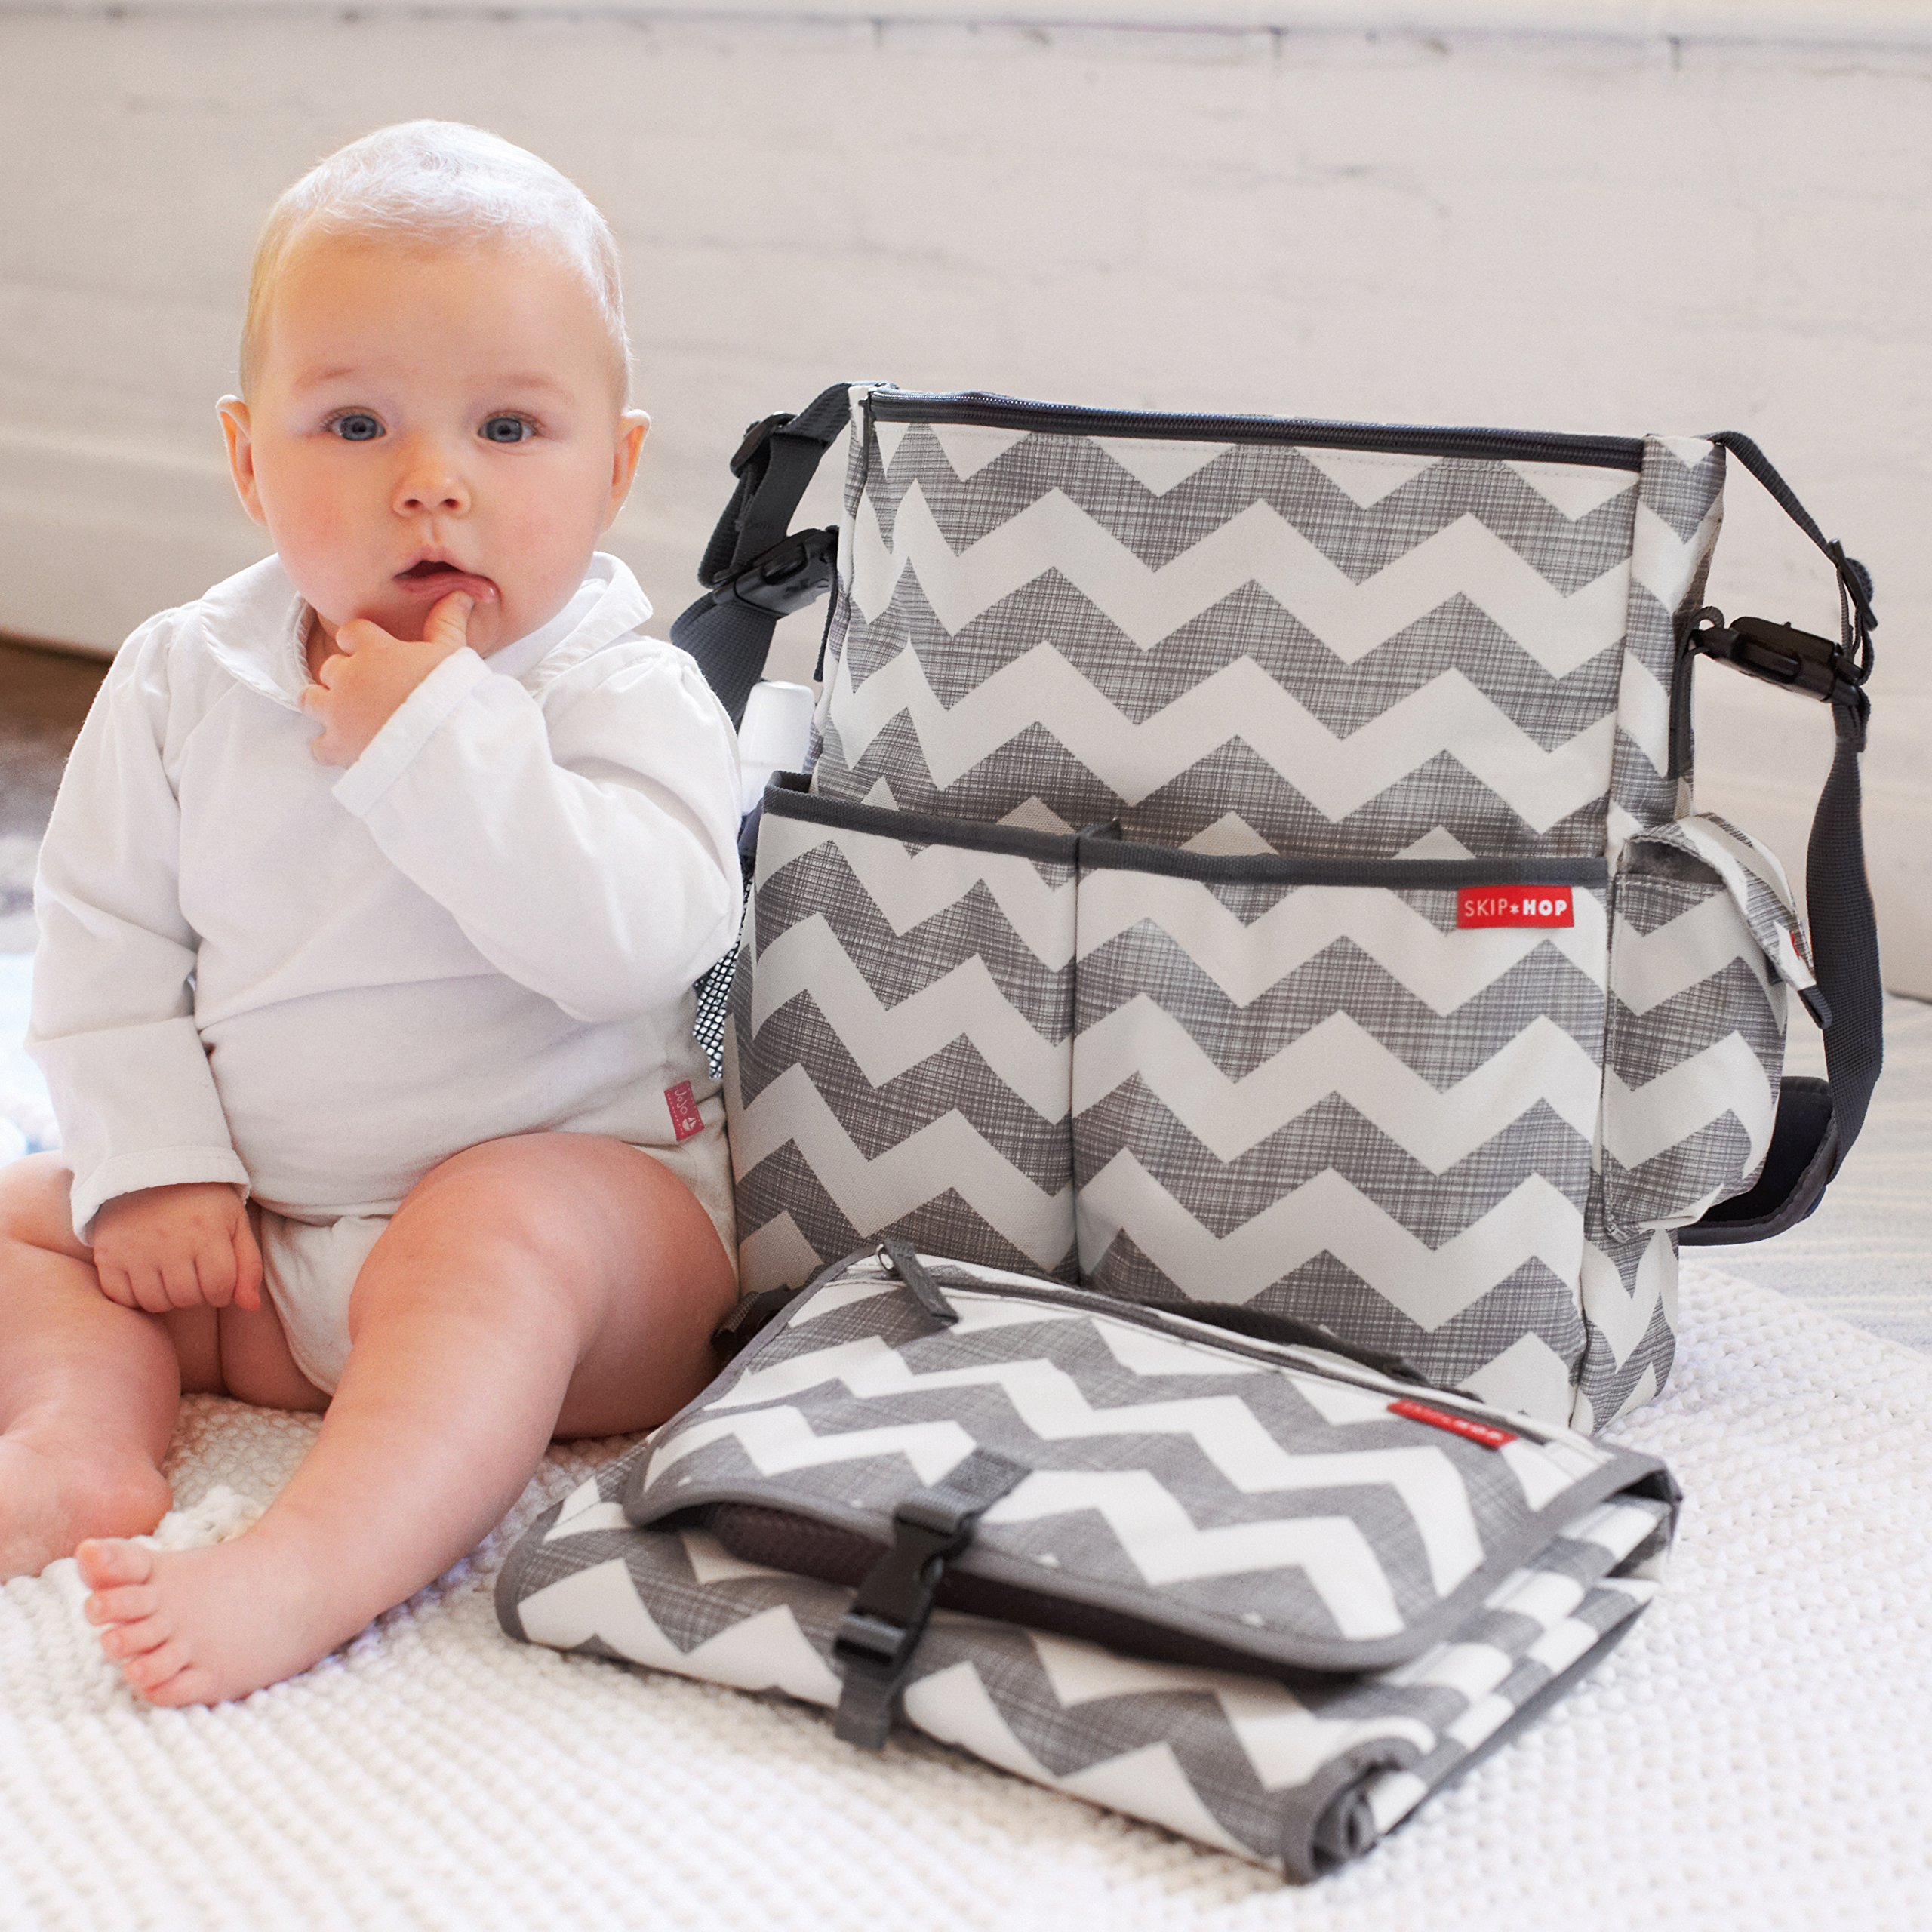 Skip Hop Baby Pronto Portable Changing Station with Cushioned Changing Mat and Wipes Case, 3 Pockets, Chevron by Skip Hop